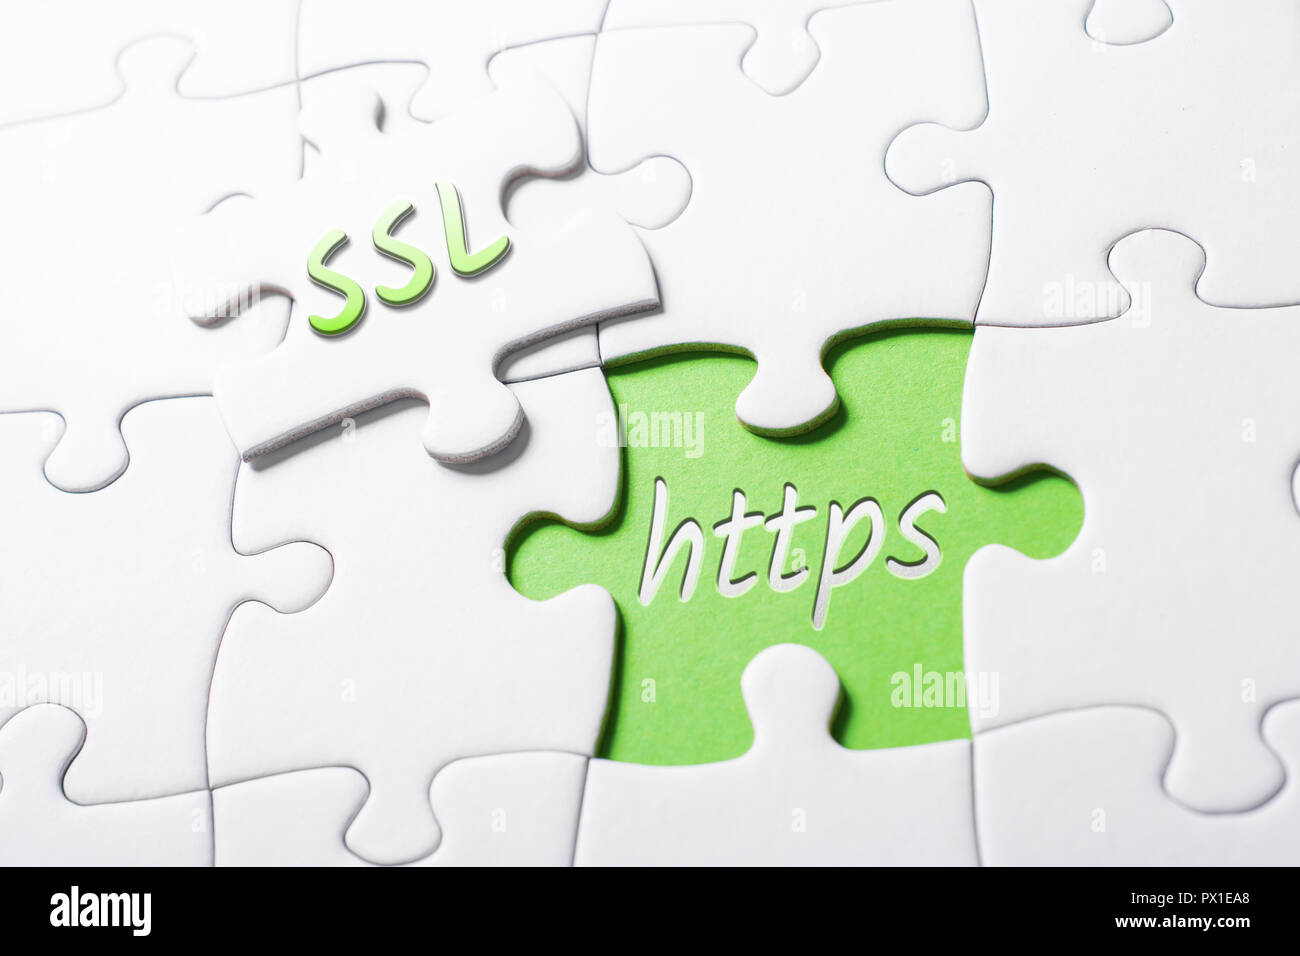 The Words SSL And HTTPS In Missing Piece Jigsaw Puzzle - Stock Image